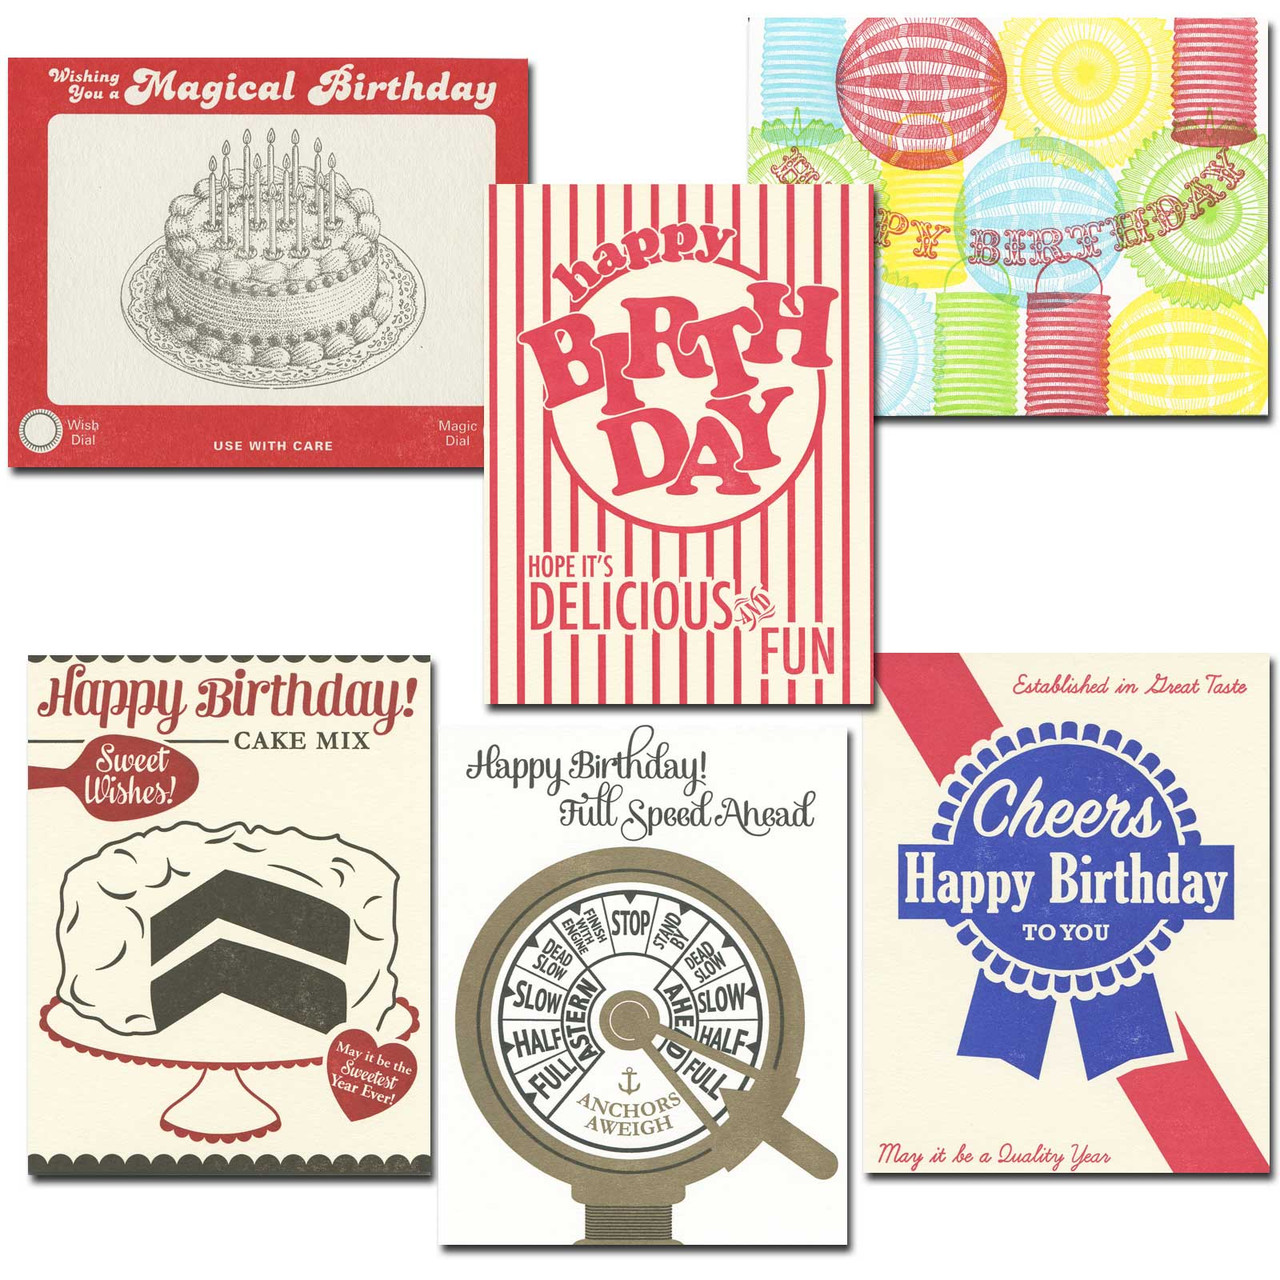 Boomers Only Birthday cards from a. favorite design features classic 1950s designs